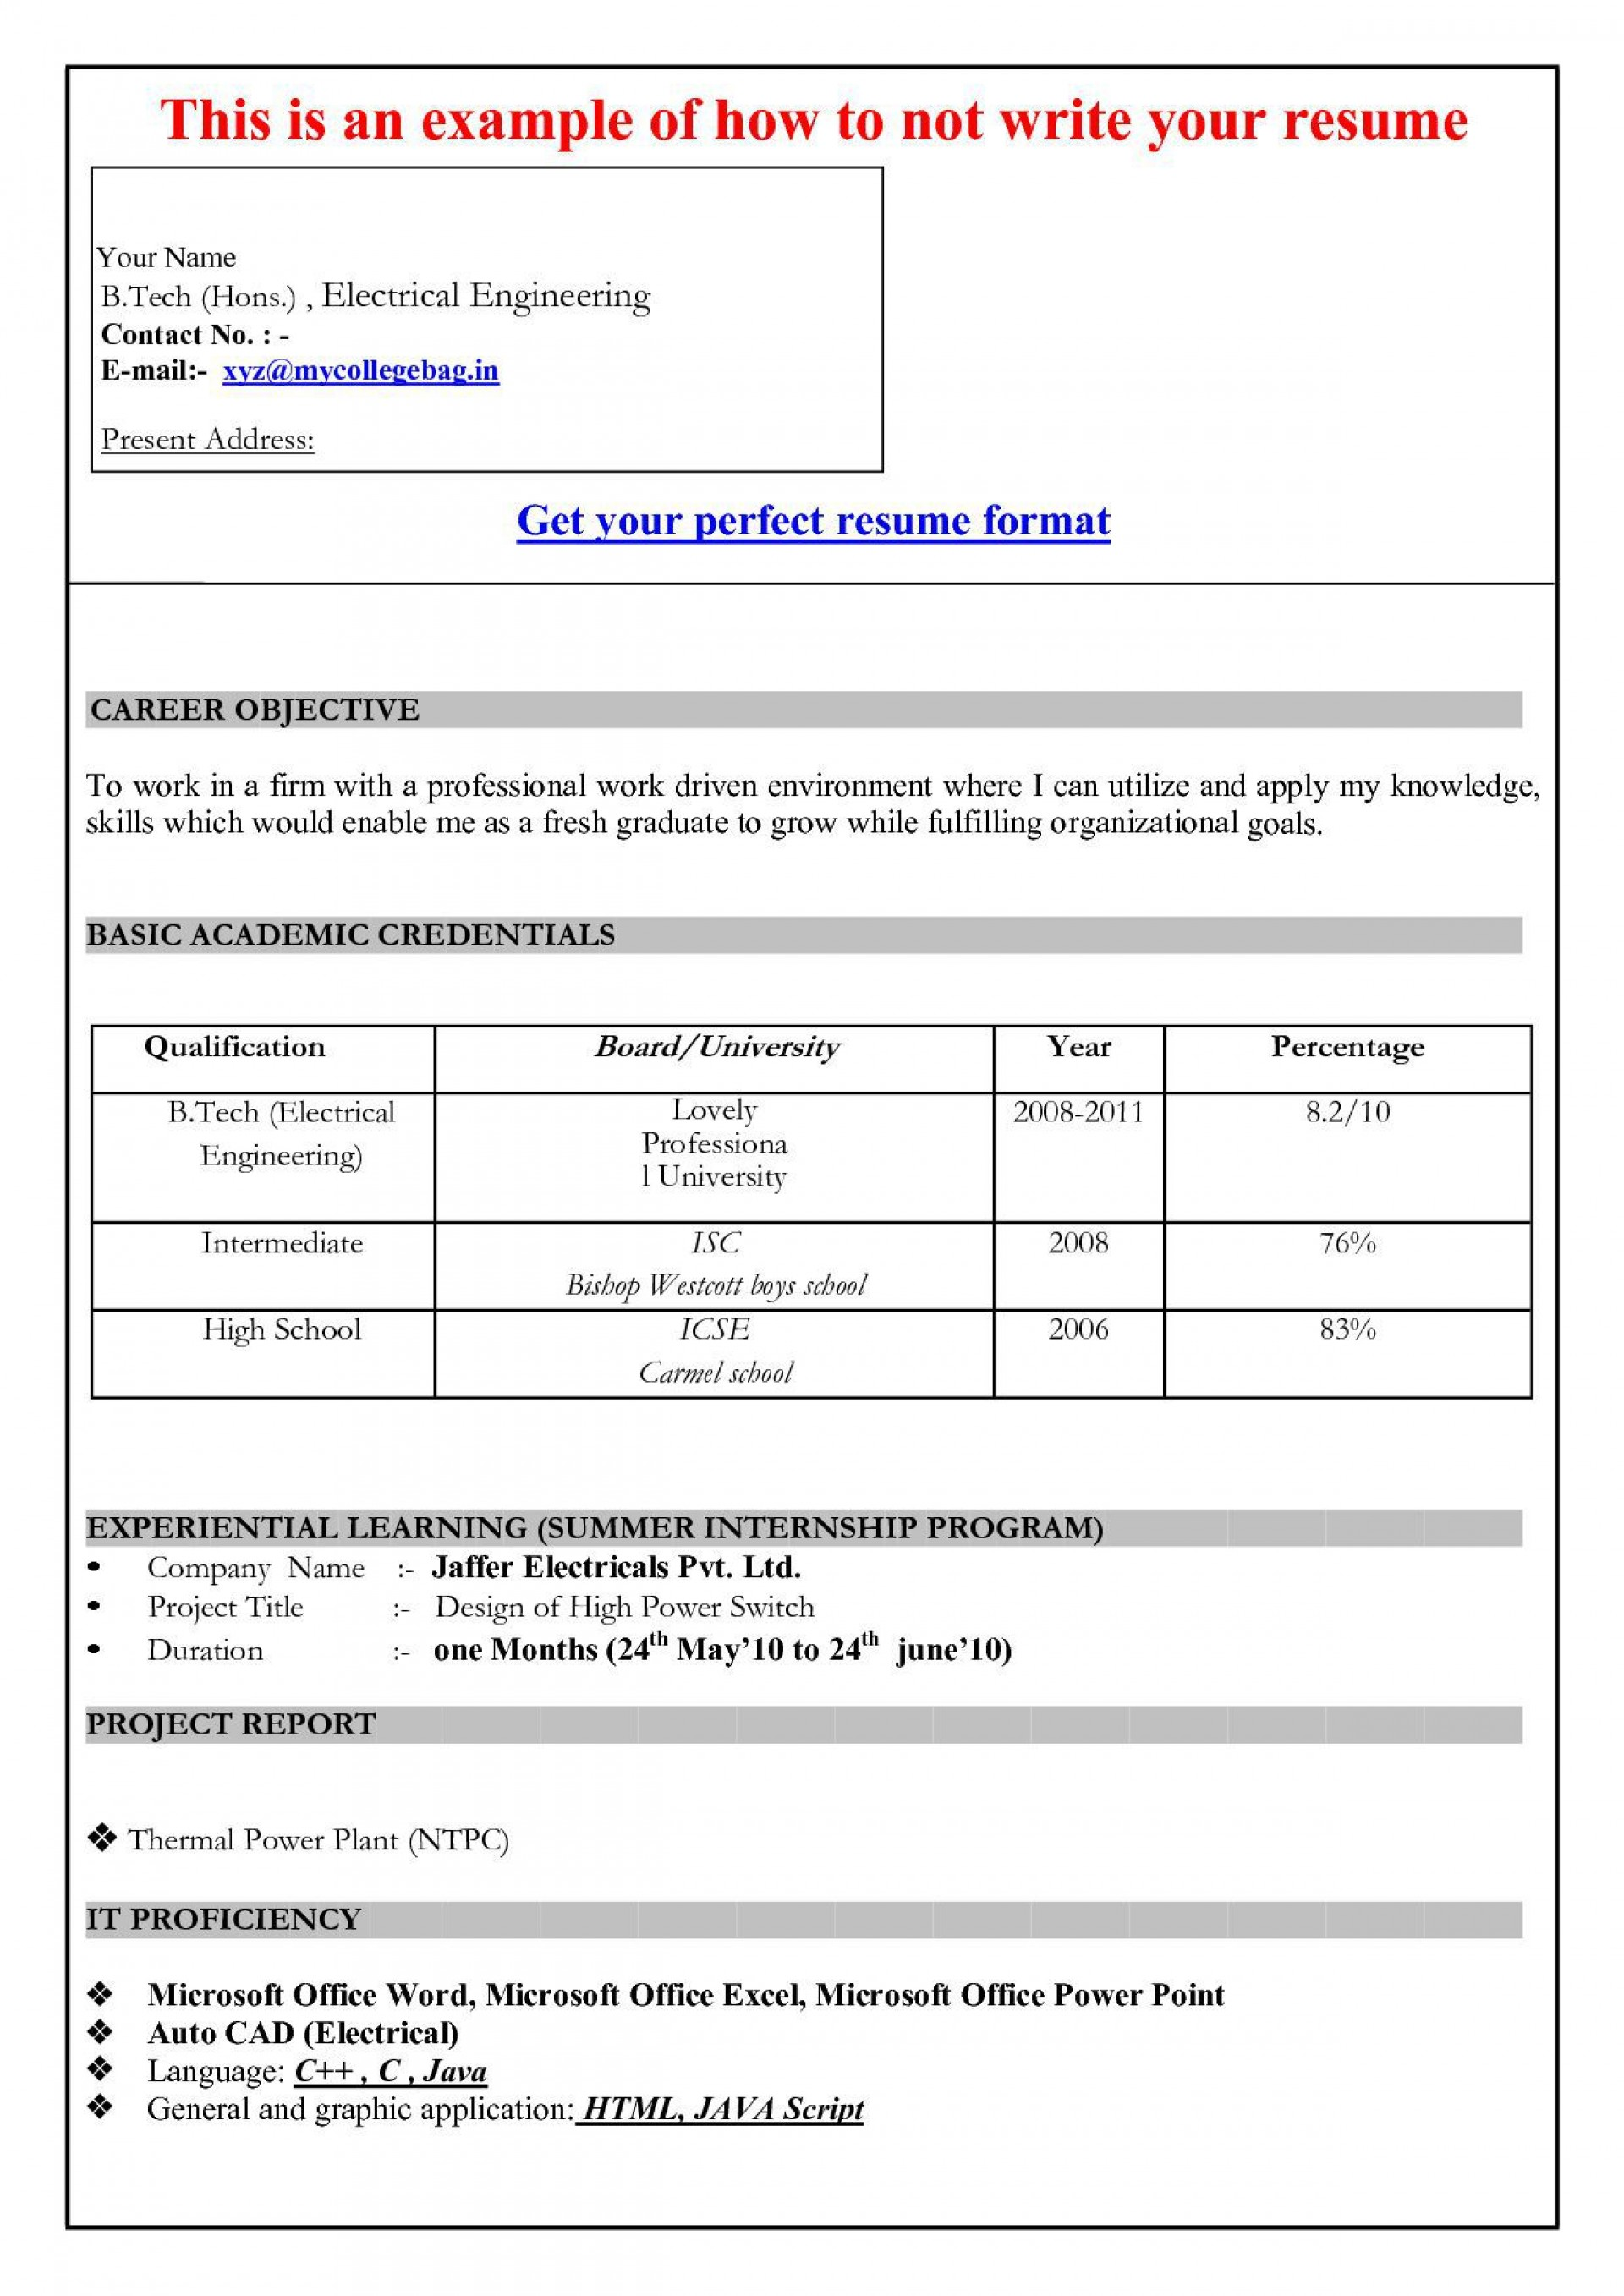 001 Unusual Download Resume Template Word 2007 Idea 1920